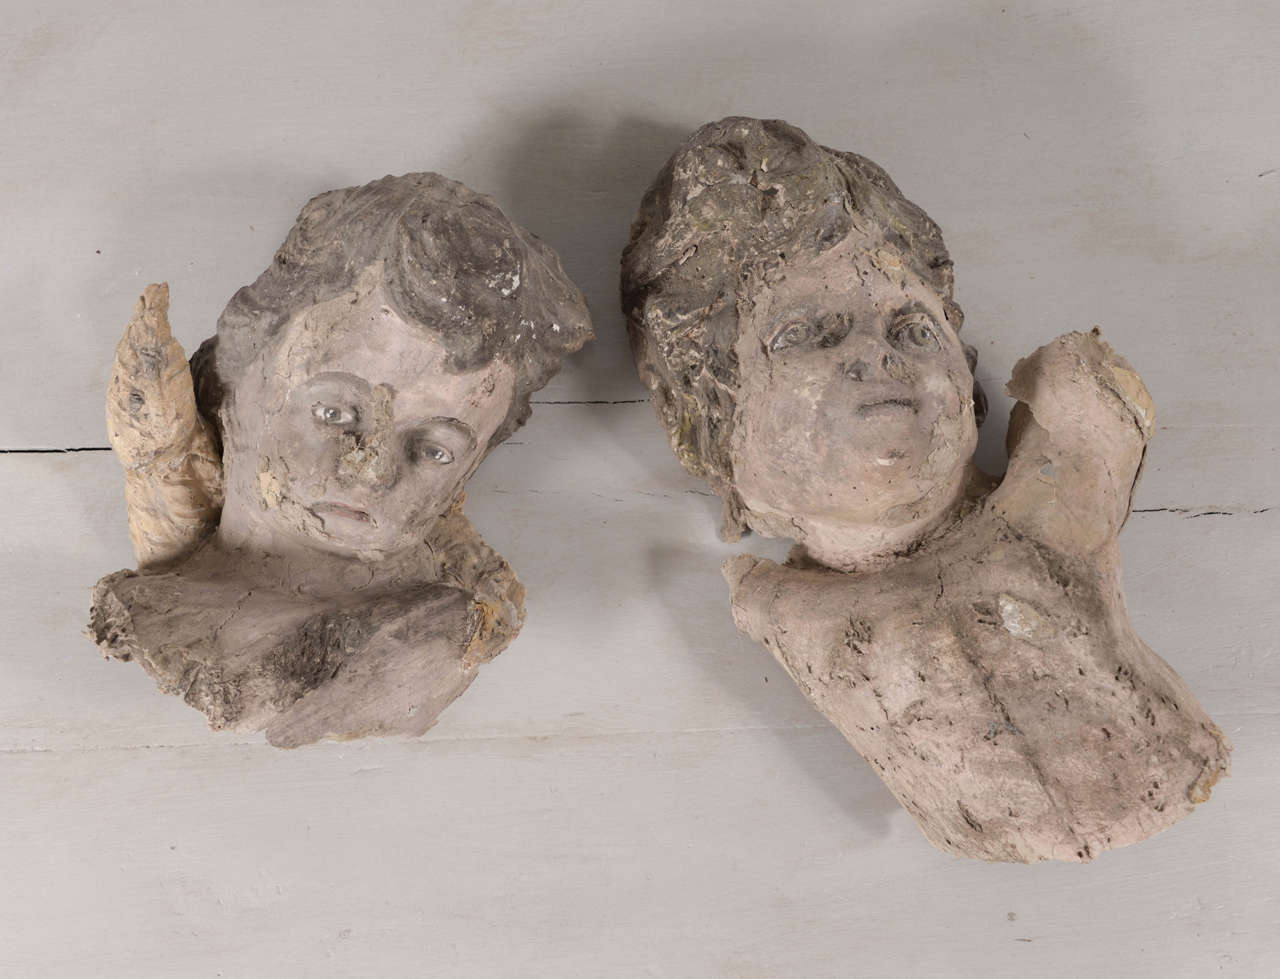 Pair of papier mâché angels. Uncommon, well-preserved 18th century sculptural fragments.